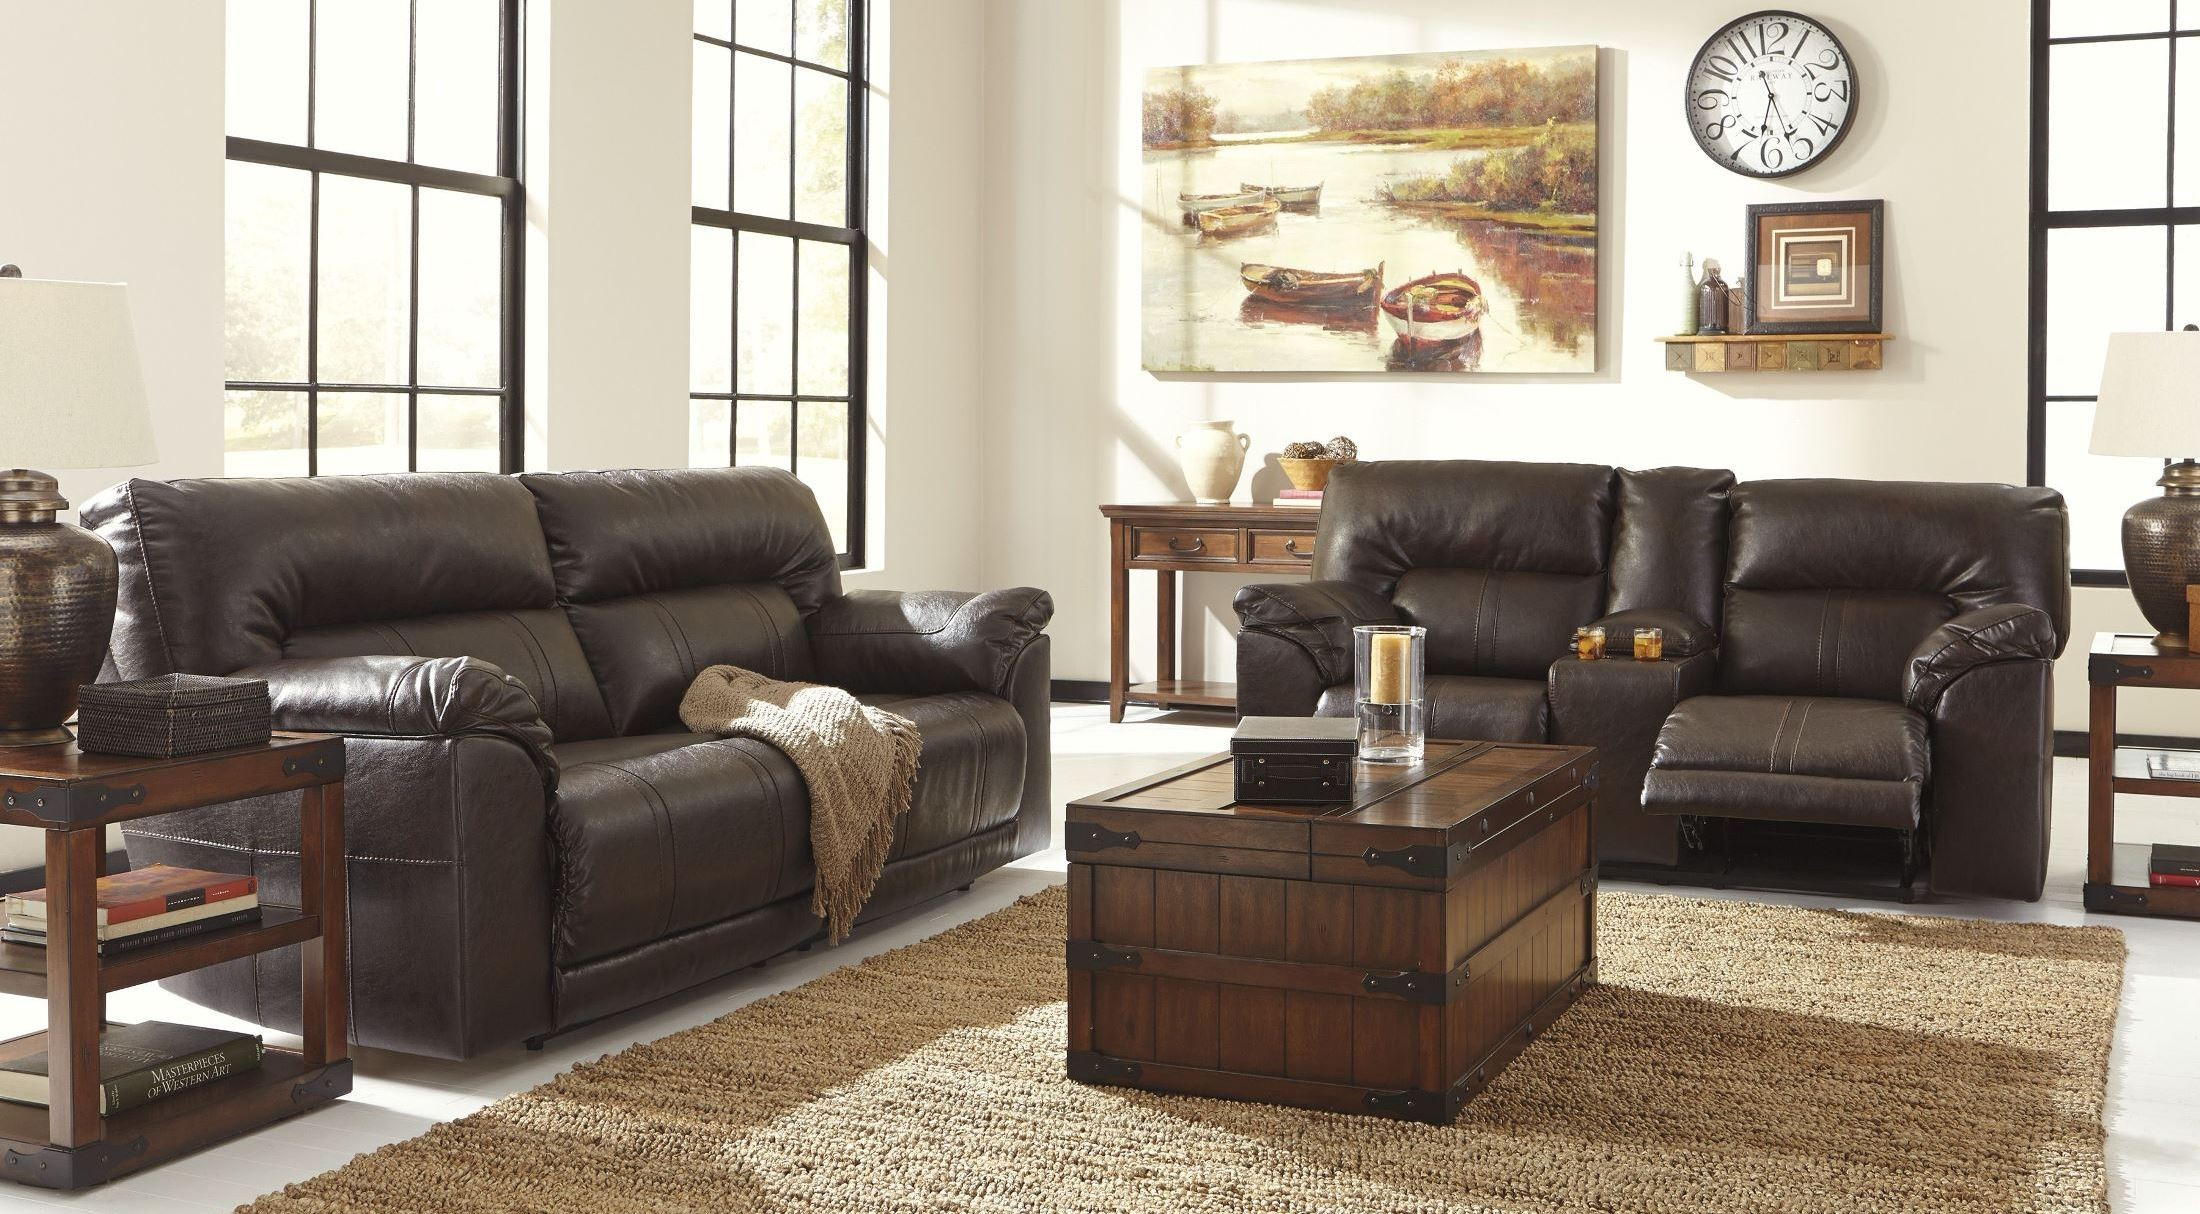 Barrettsville DuraBlend Chocolate Power Reclining Living Room Set From Ashley